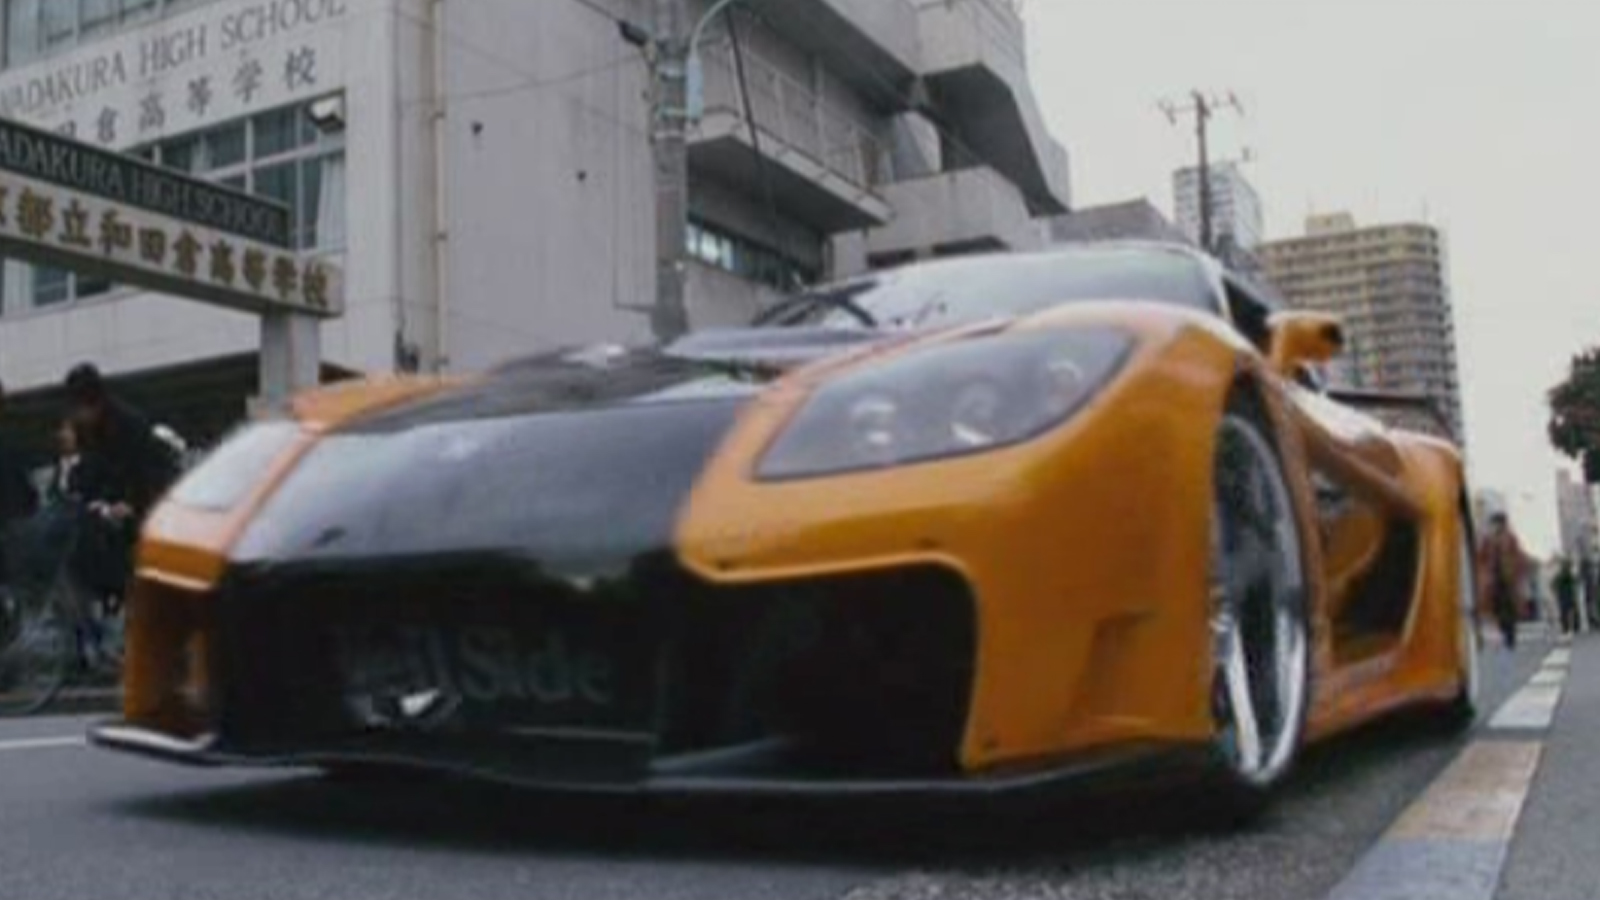 mazda rx7 fast and furious 6. car wallpapers free download the fast and furious tokyo drift veilside mazda rx7 fortune velozes u0026 furiosos desafio em tquio rx7 6